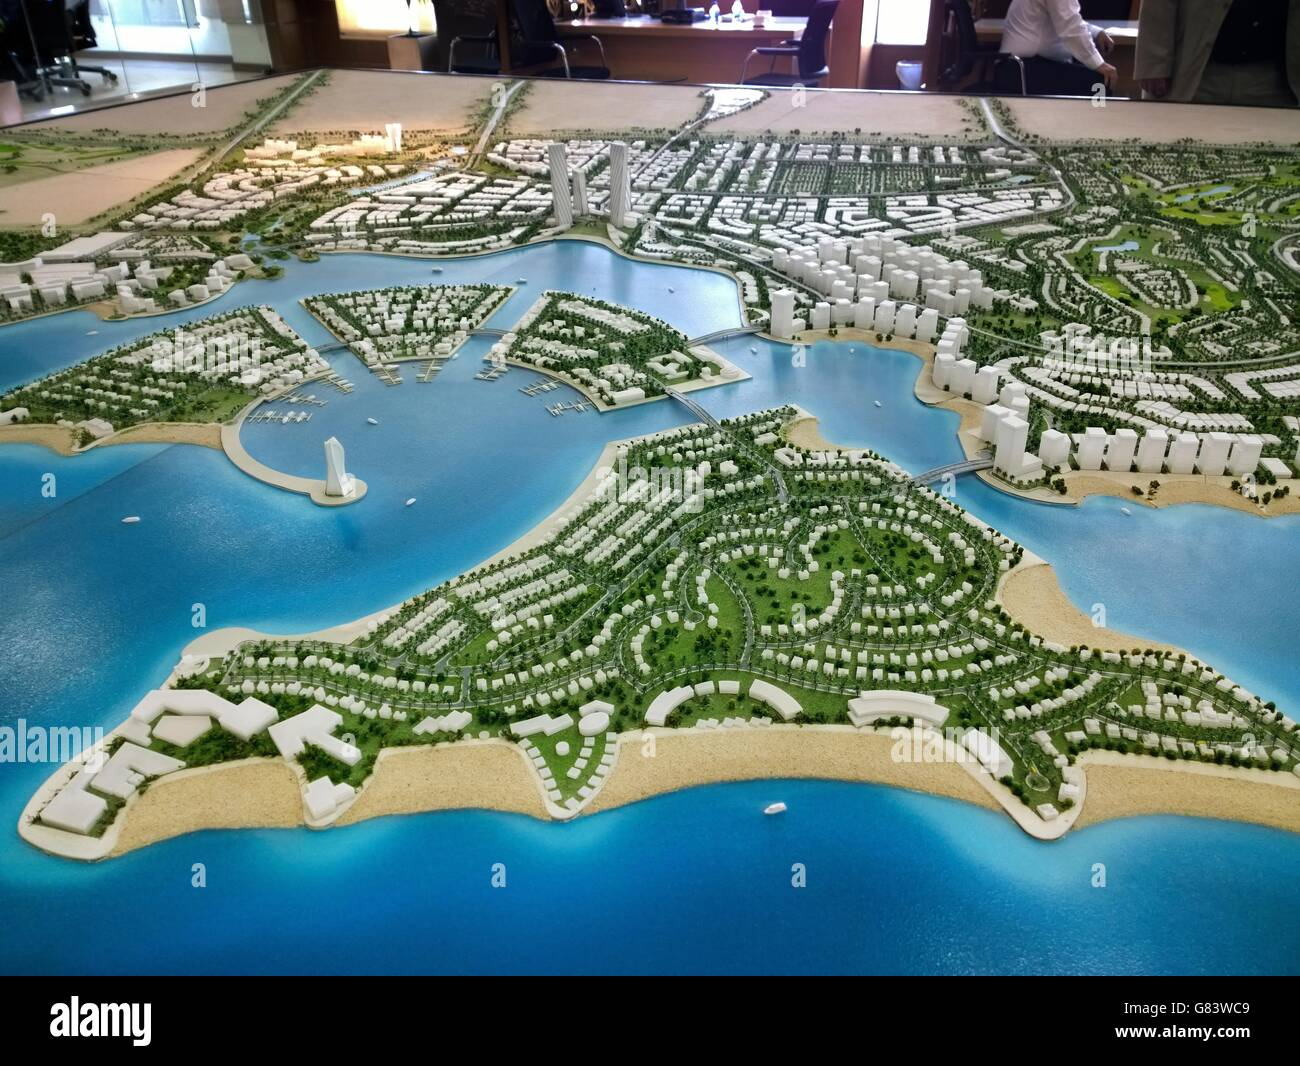 Master plan scale model birds-eye aerial overview of the developing new marina city of Lusail, Qatar. - Stock Image